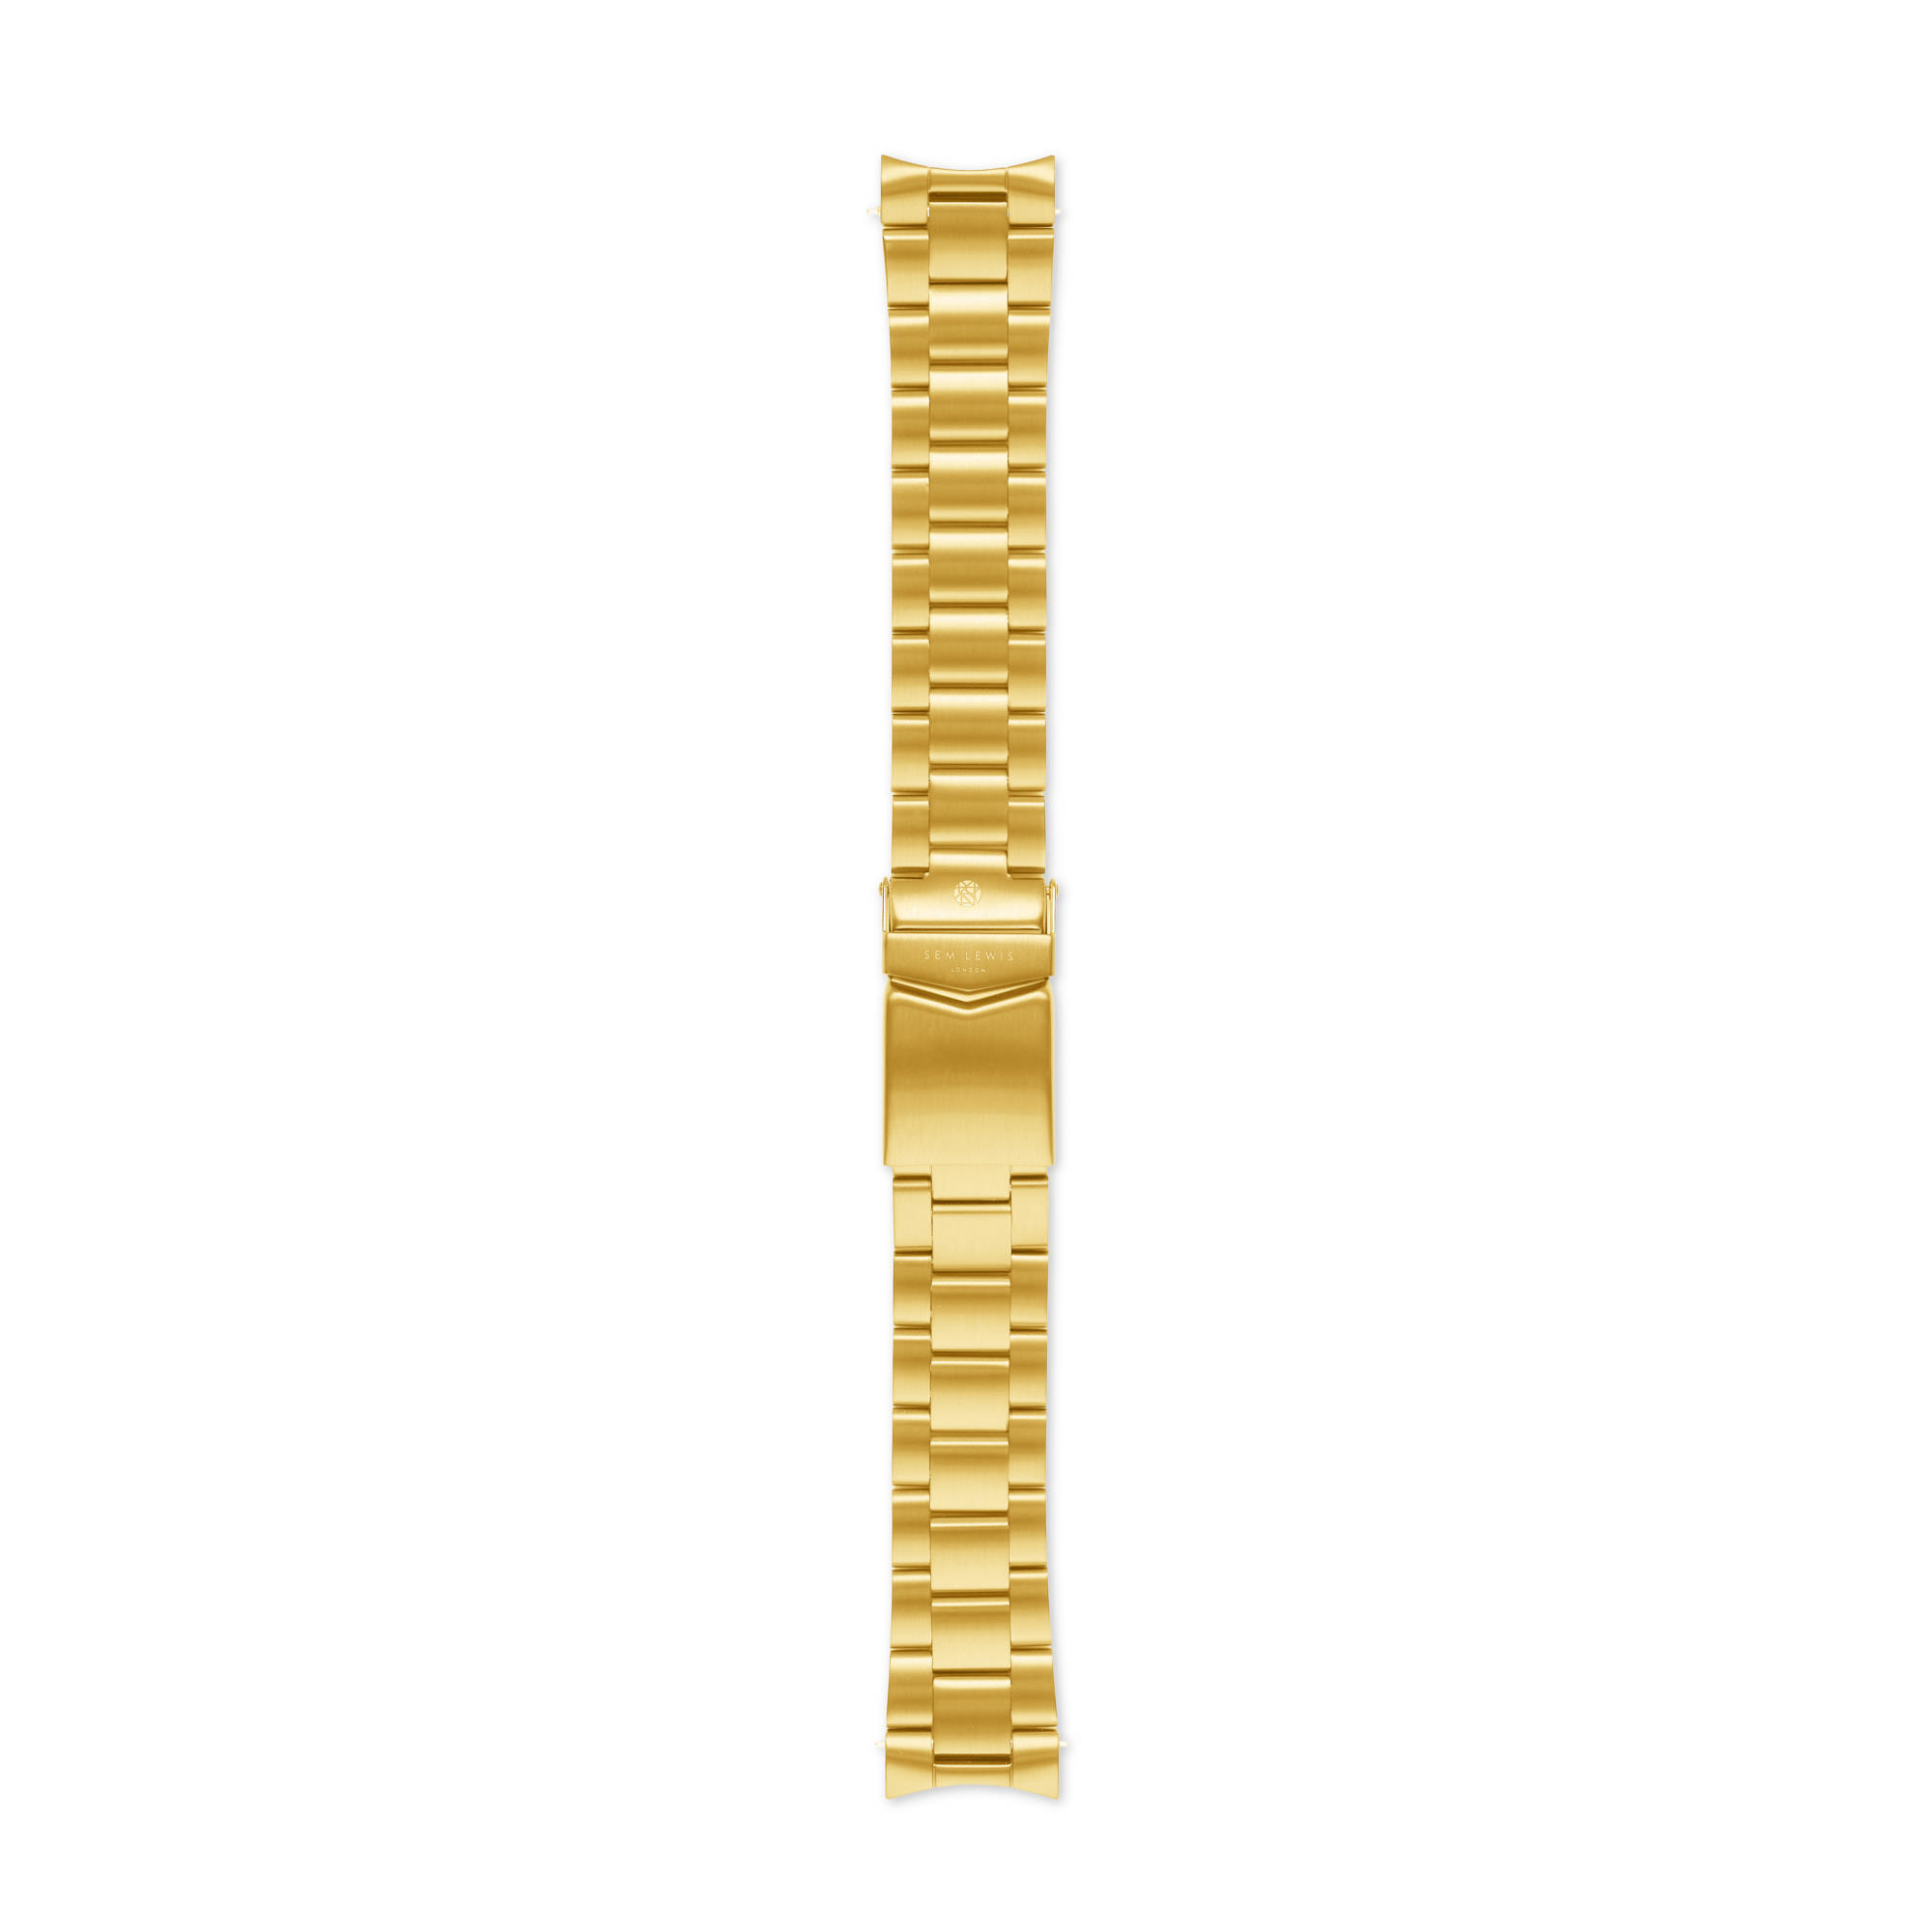 Sem Lewis Lundy Island Diver steel watch strap 20 mm gold colored